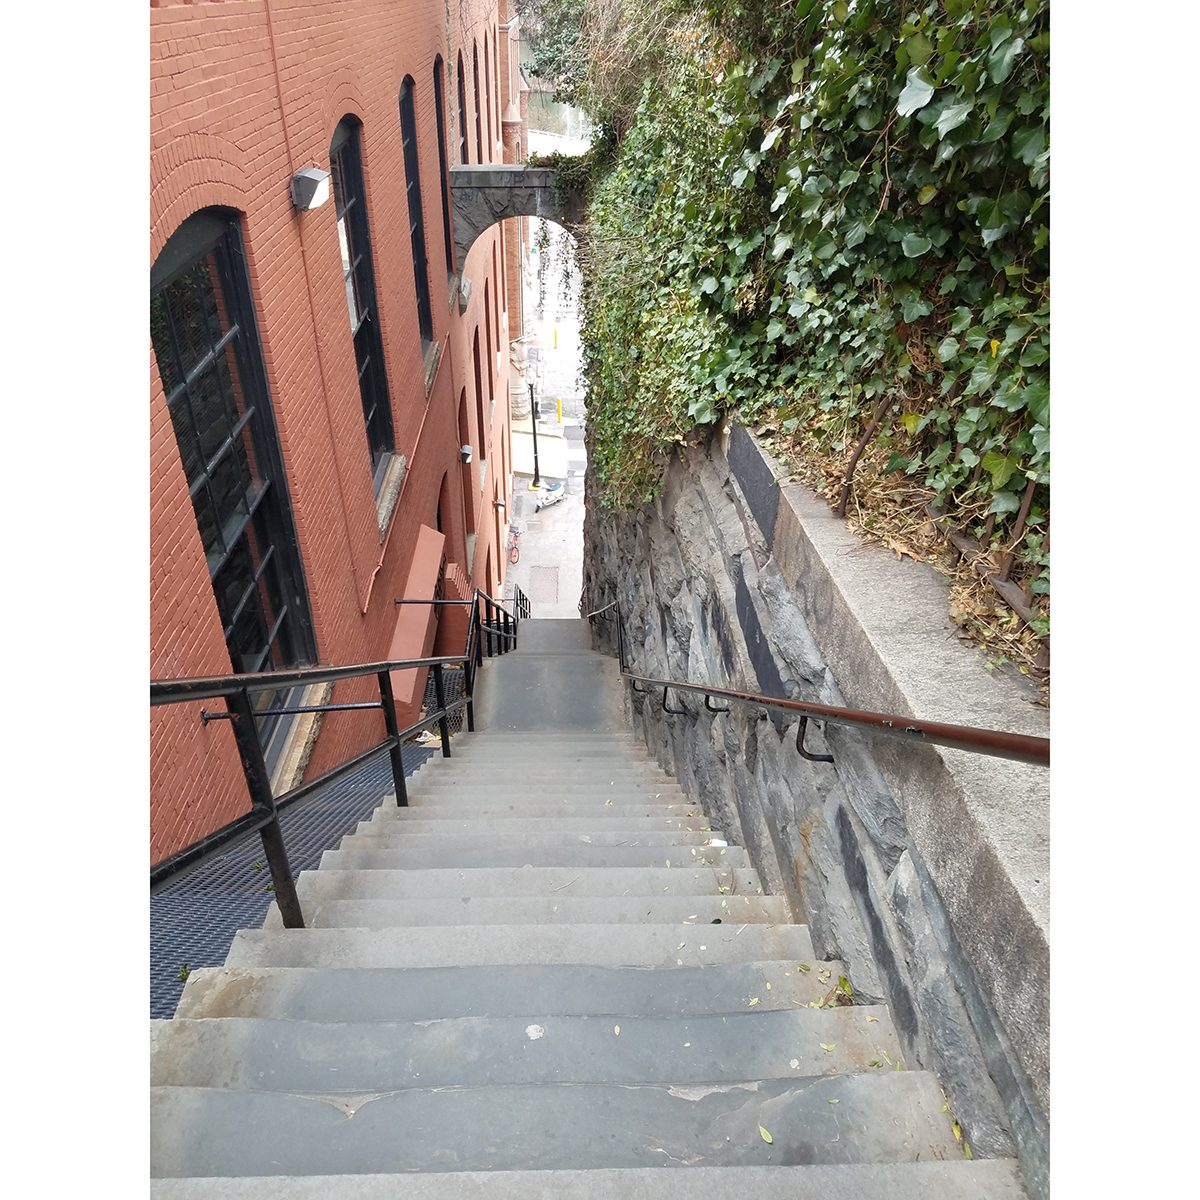 Horror movie locations - The Exorcist steps in Washington, DC